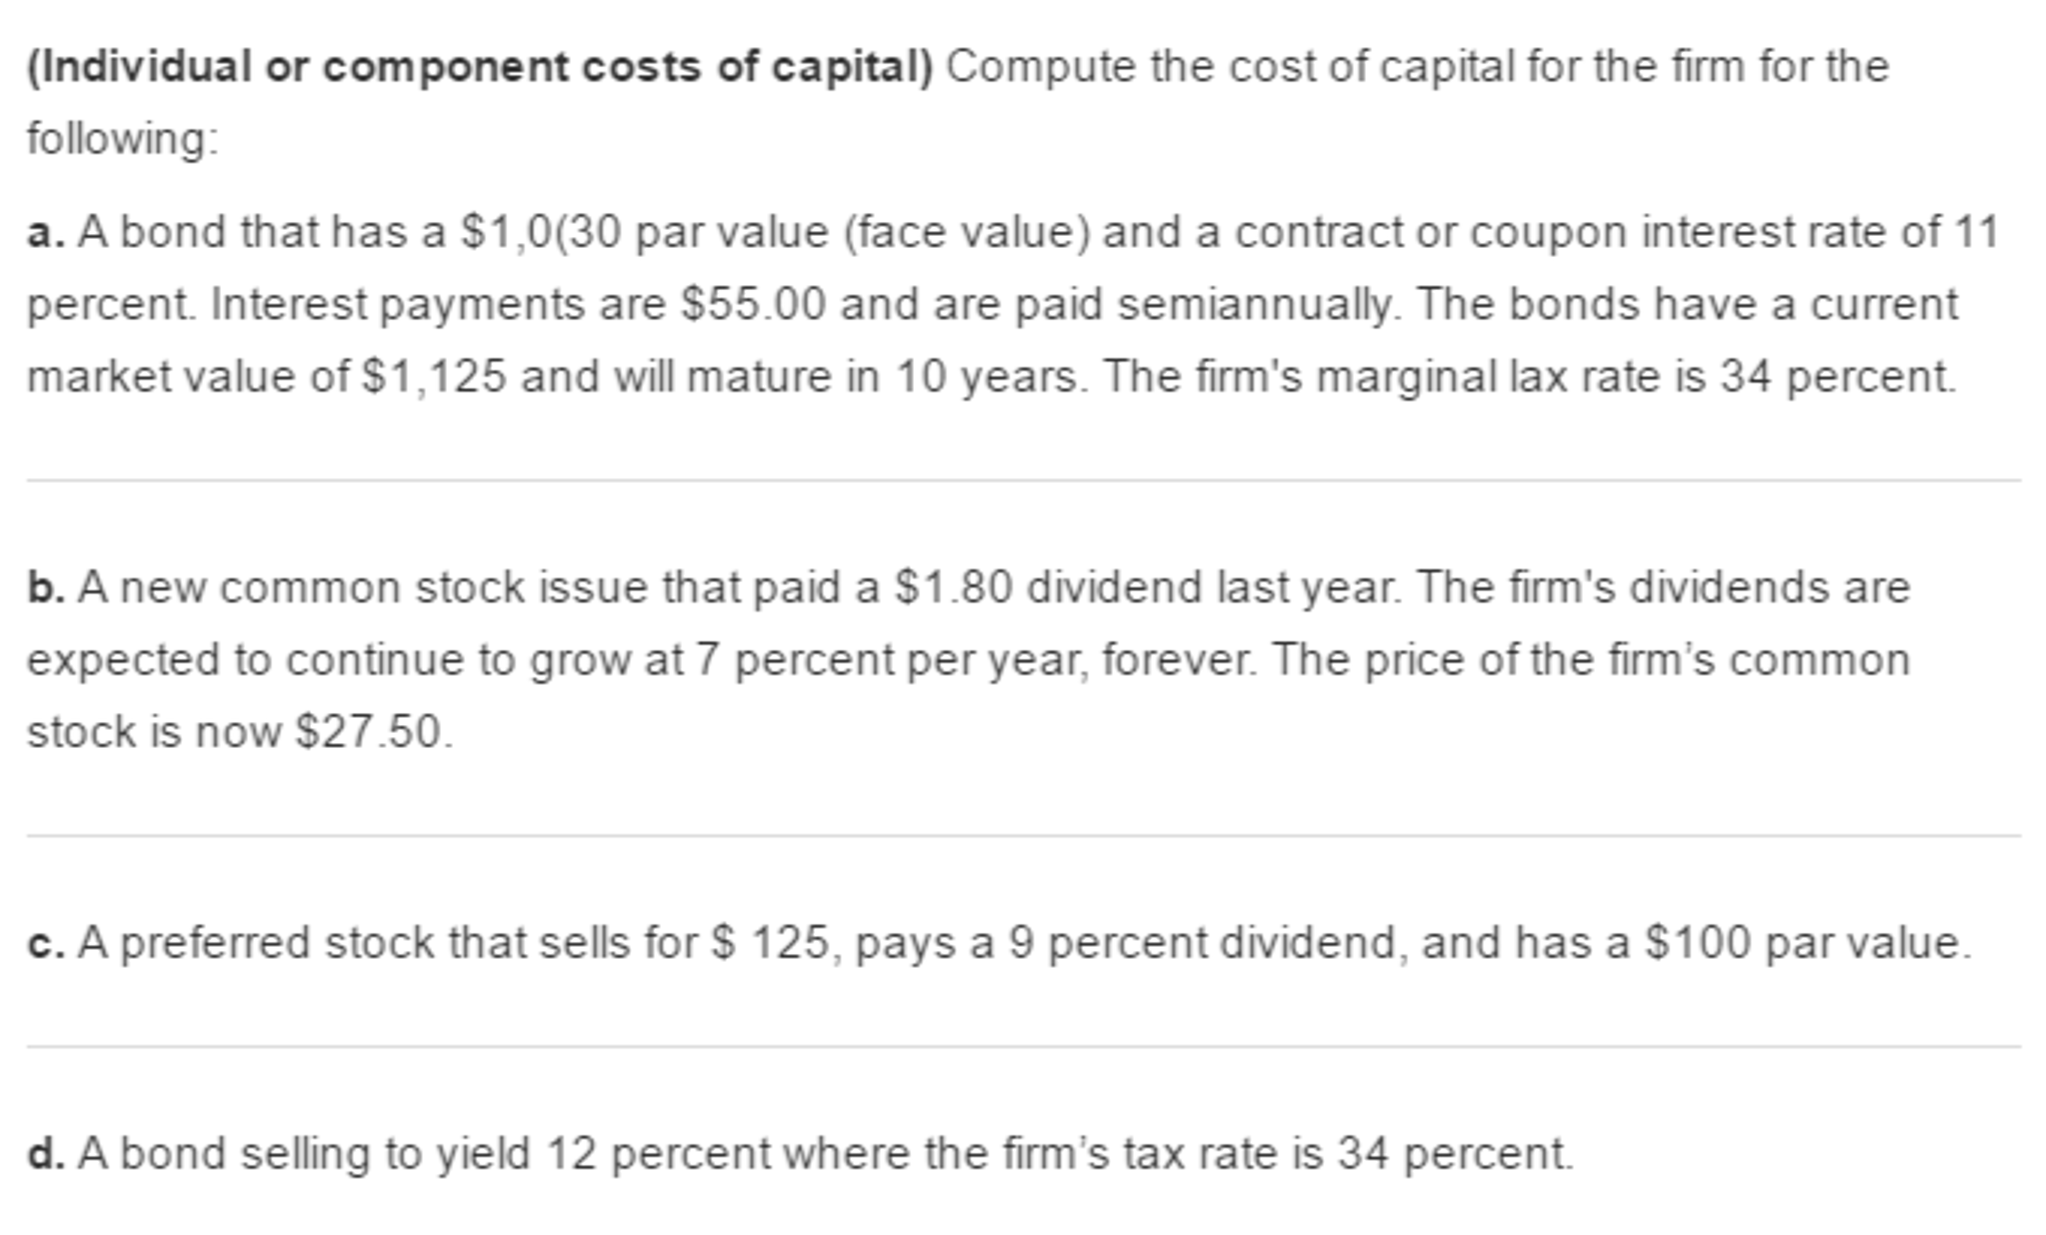 problems on cost of capital computation Valuing different costs debt is a firm calculation of the cost of capital, where the lender applies an premium ( interest rate) to the risk -free rate based upon the organization's existing assets there are a few problems with this method.